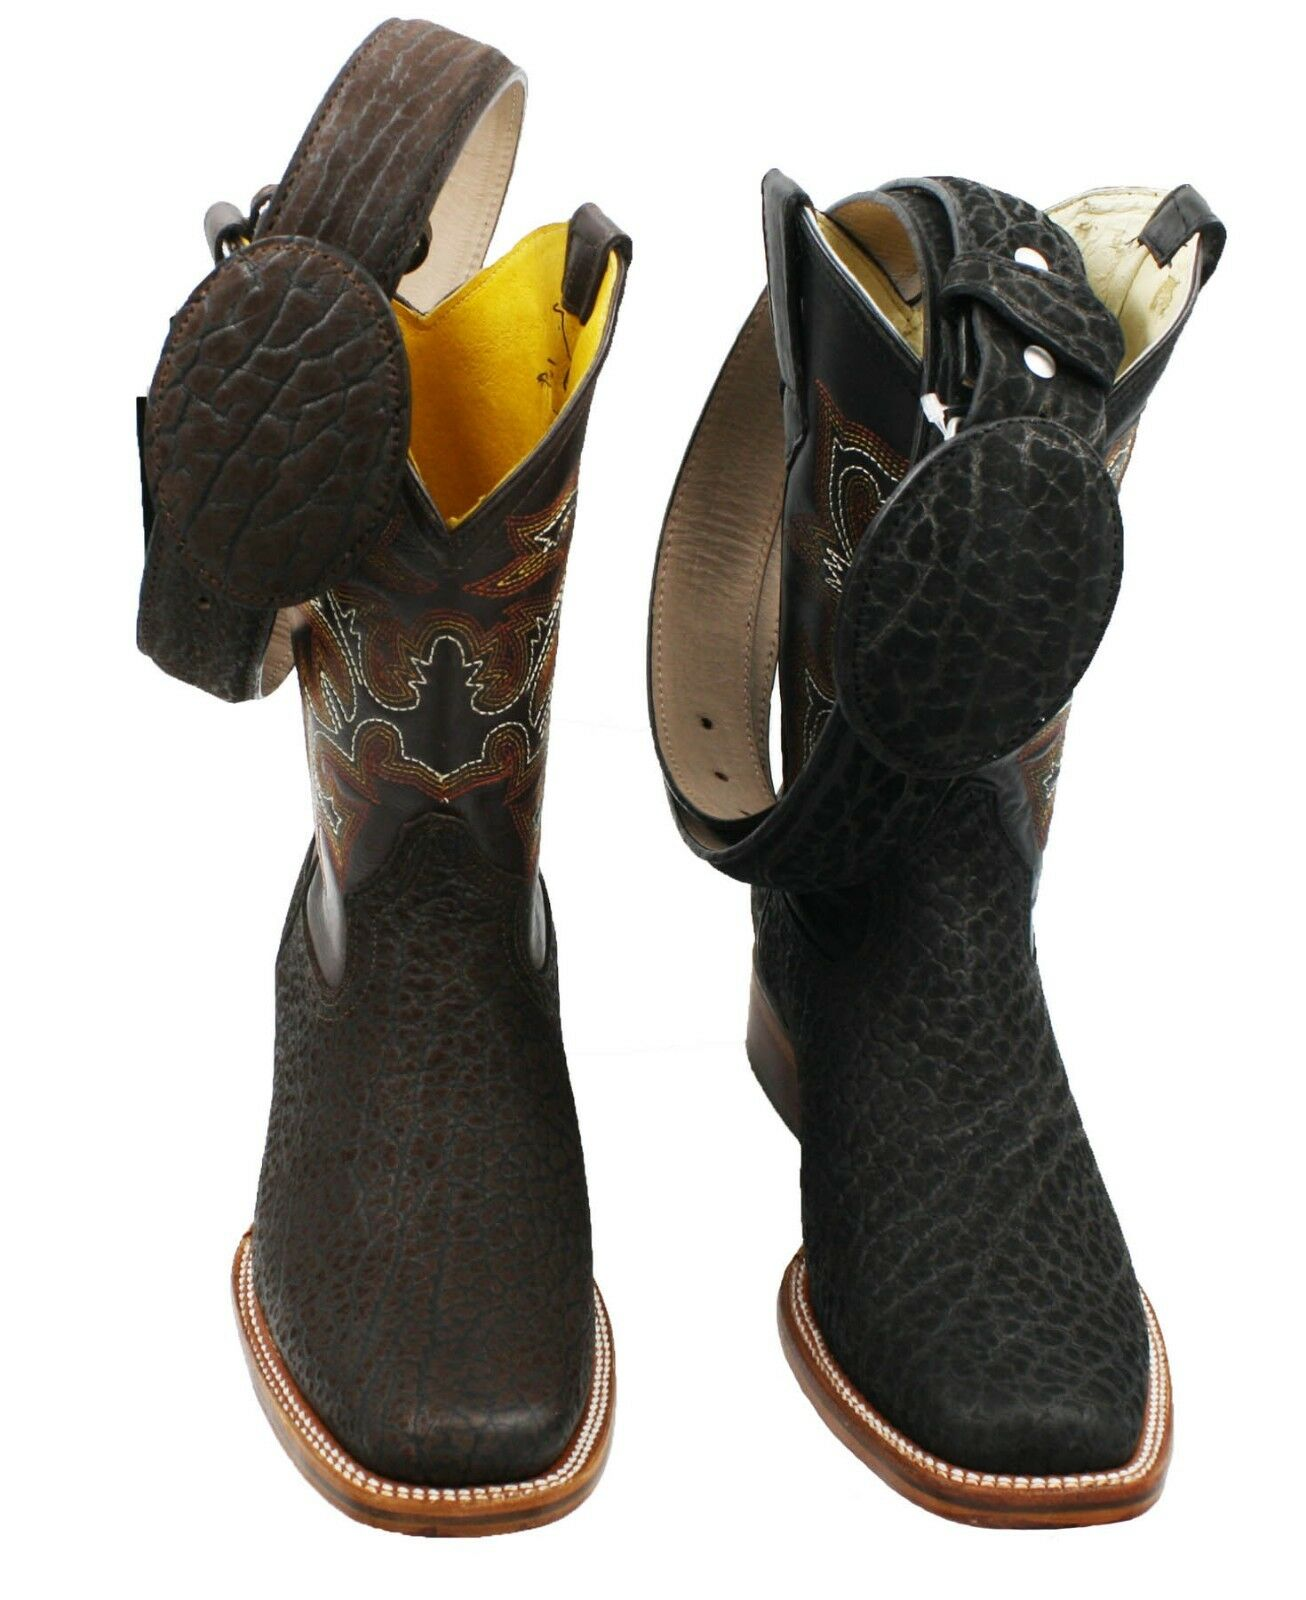 Men Genuine Cowboy Western Square Toe Bull Leather BOOTS - With Free Belt